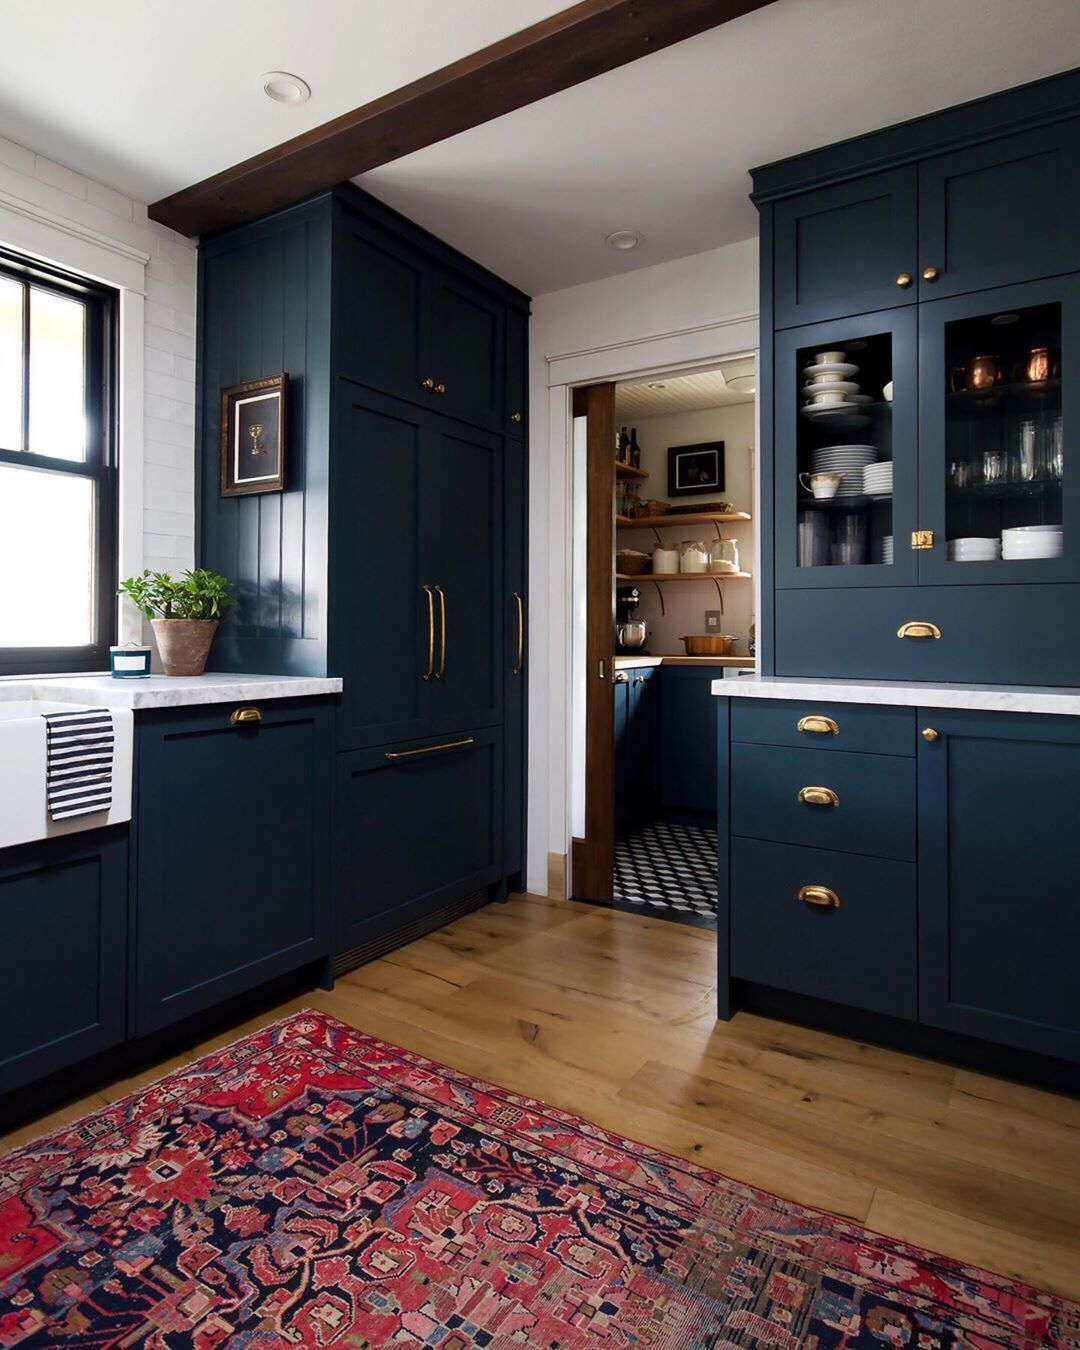 The Broom Cupboard Pullout Is Officially Finished Yes Yes Thank You All For Your Support Kitchen Decor Inspiration Beautiful Kitchen Cabinets Navy Kitchen